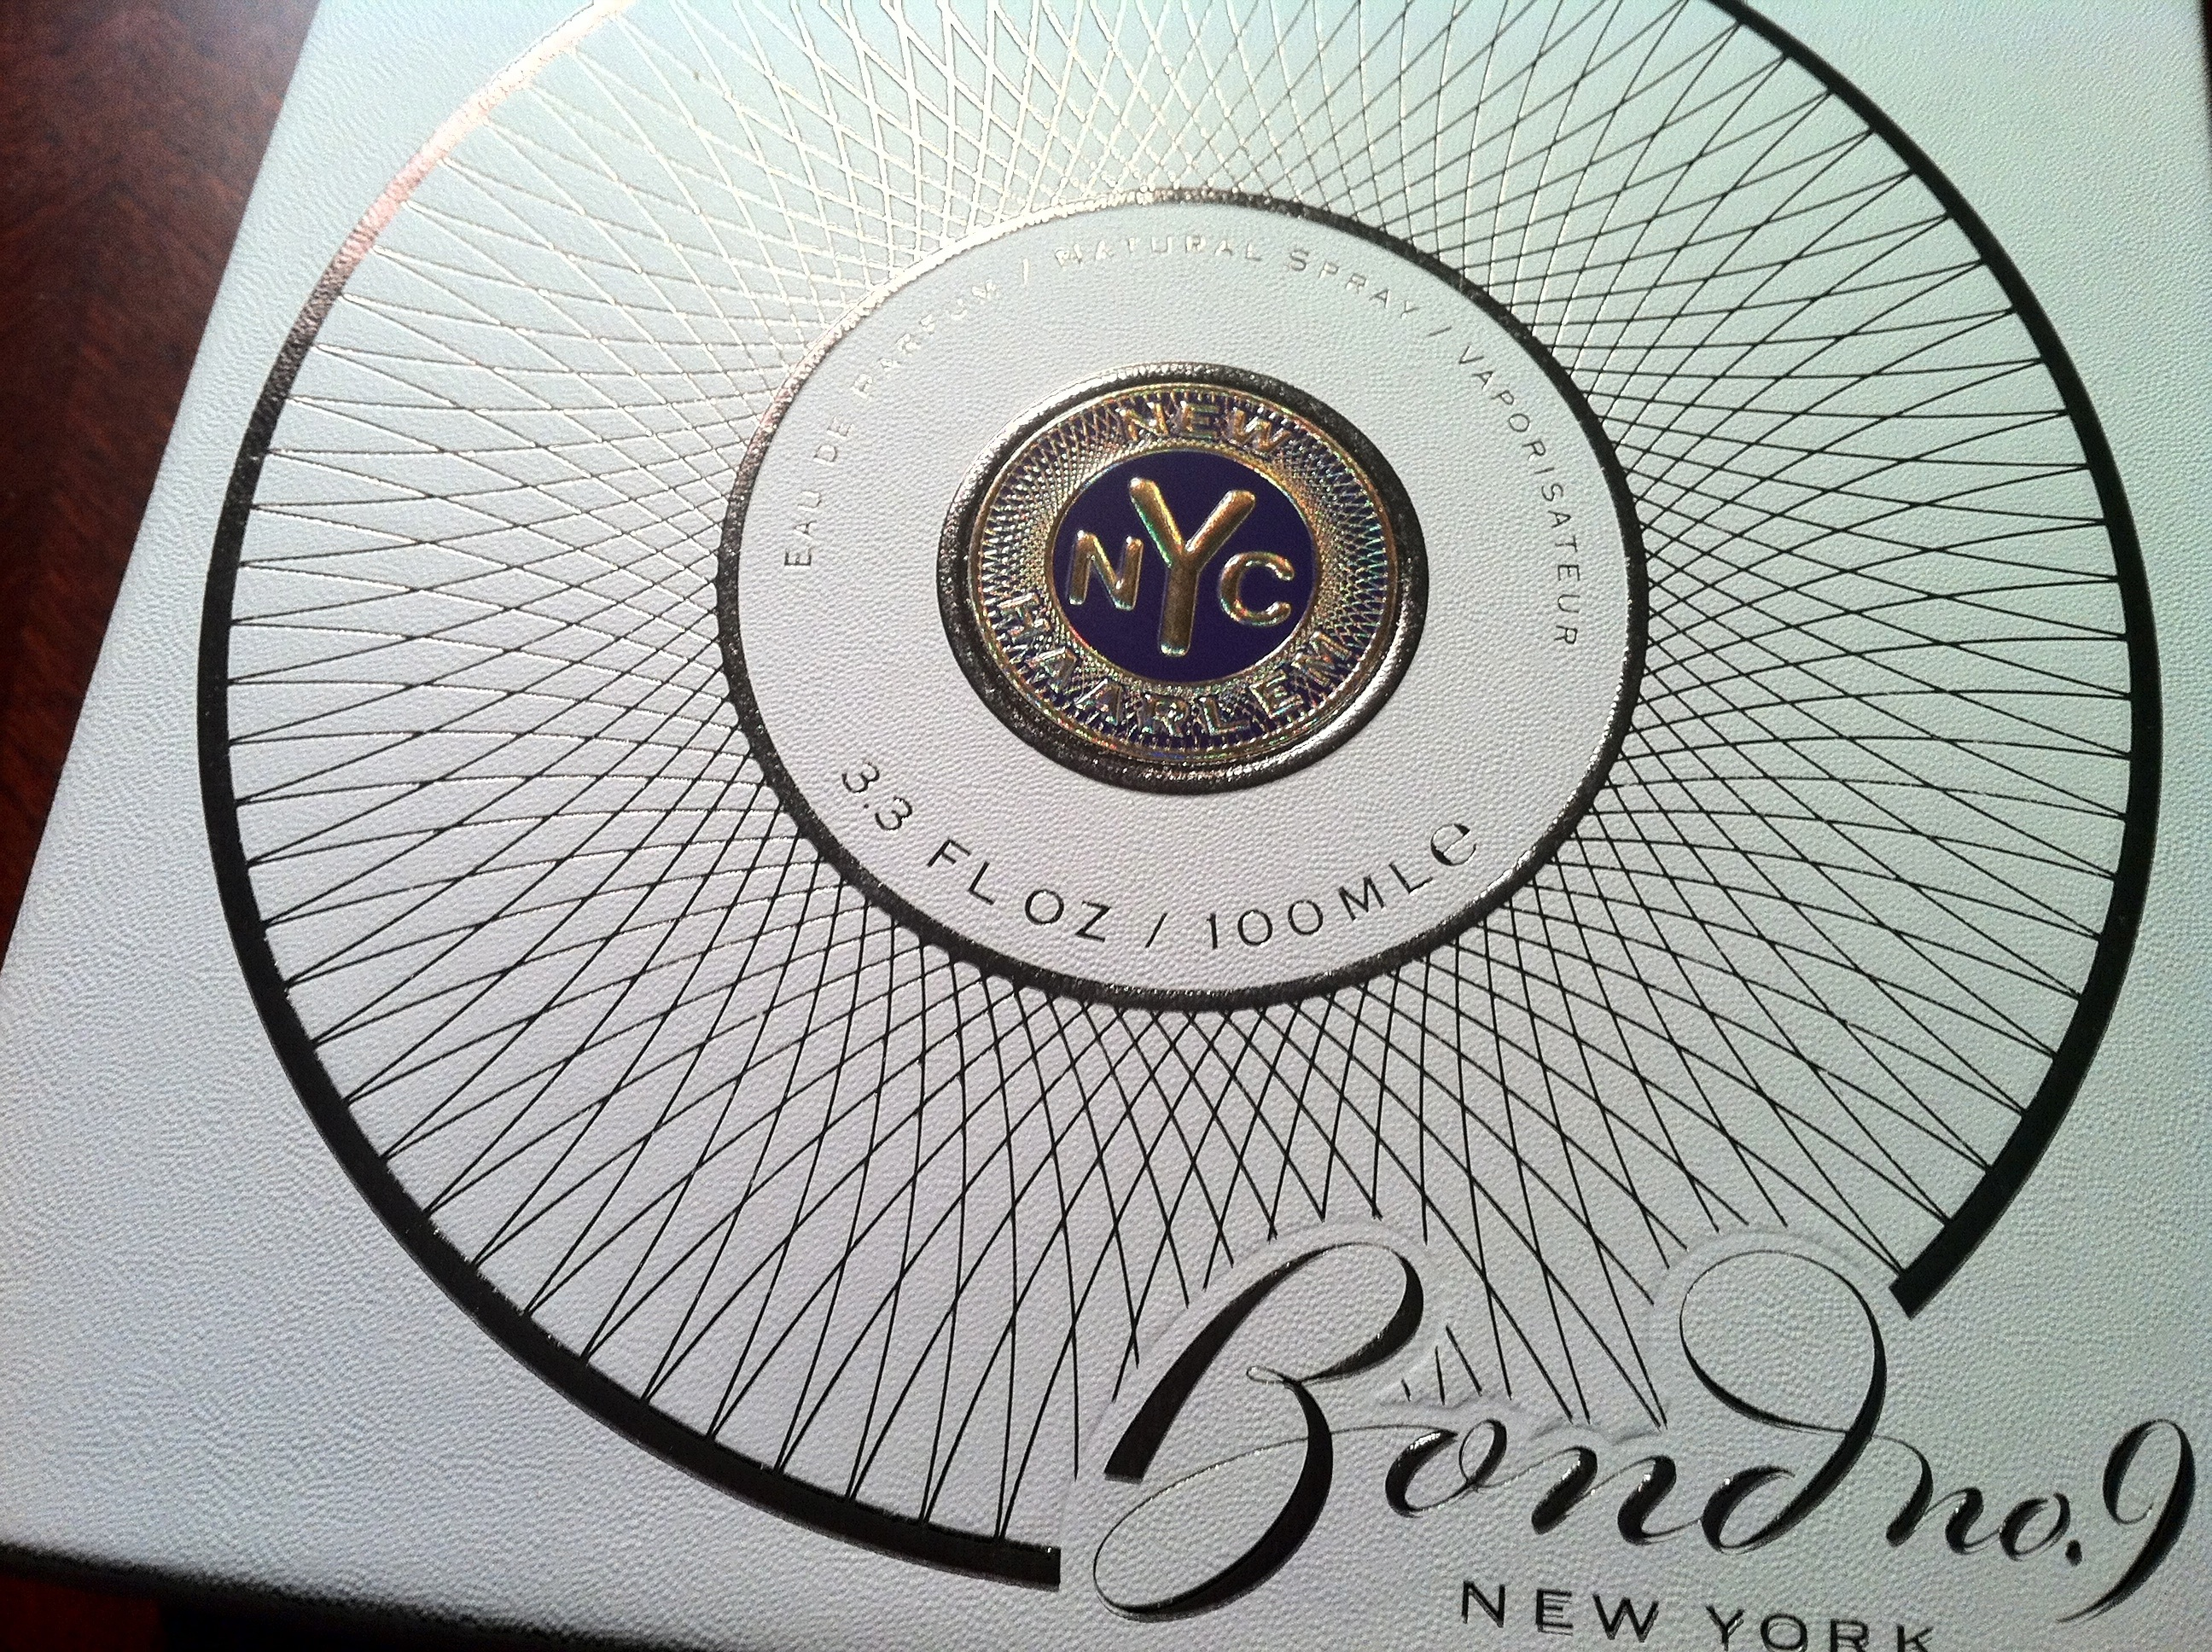 Bond No 9 New Haarlem Fragrance Box